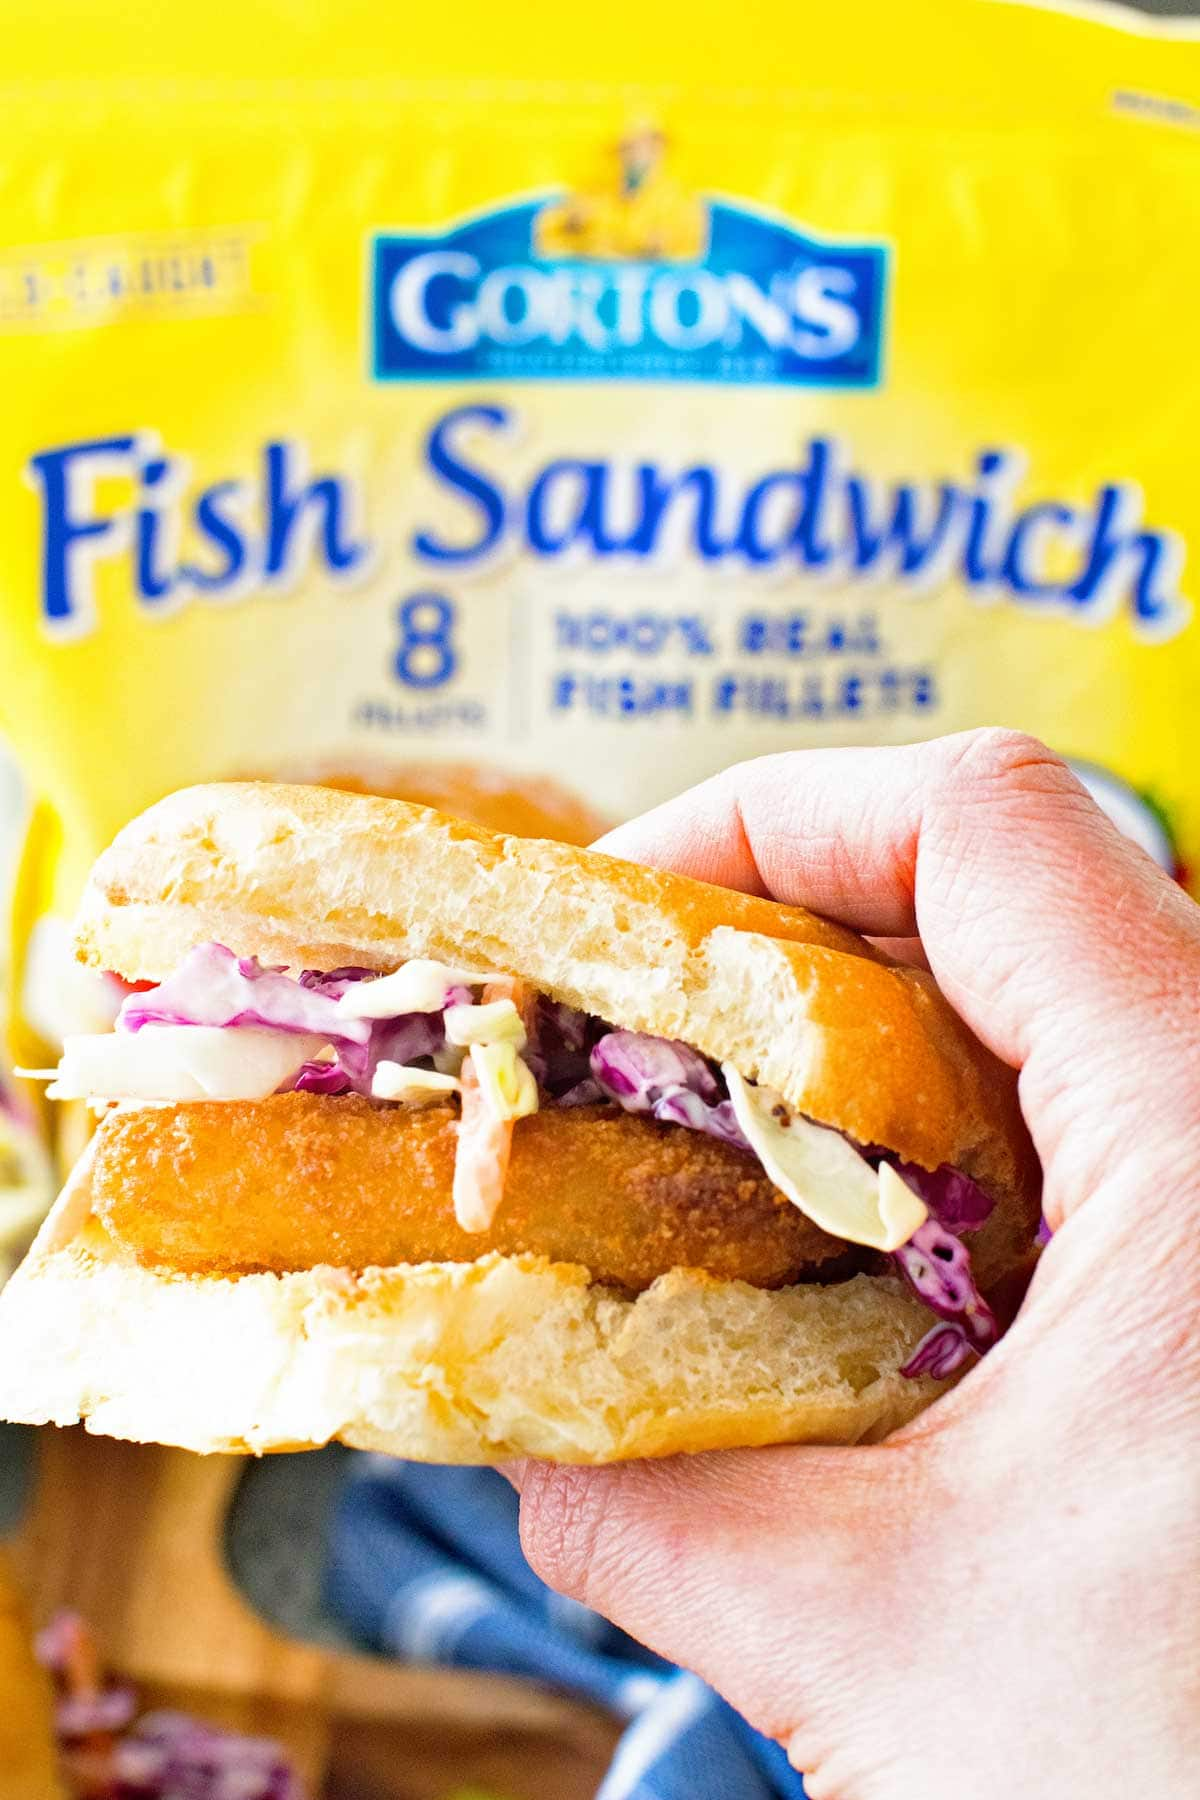 Fish Sandwich Hold Gortons